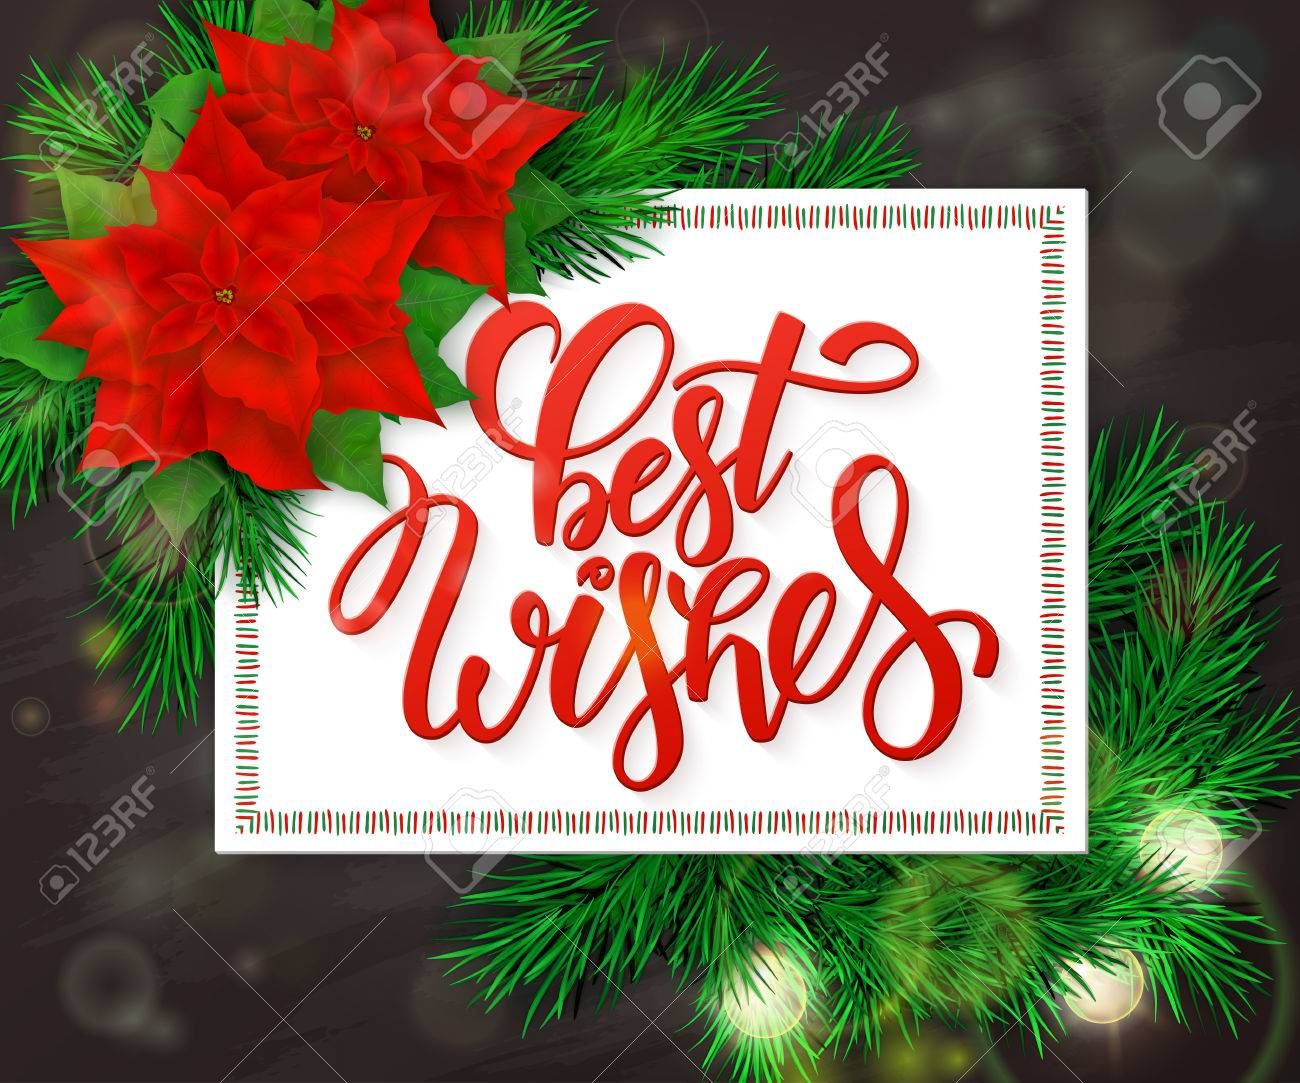 Hand Drawn Christmas Lettering Greetings Text Best Wishes